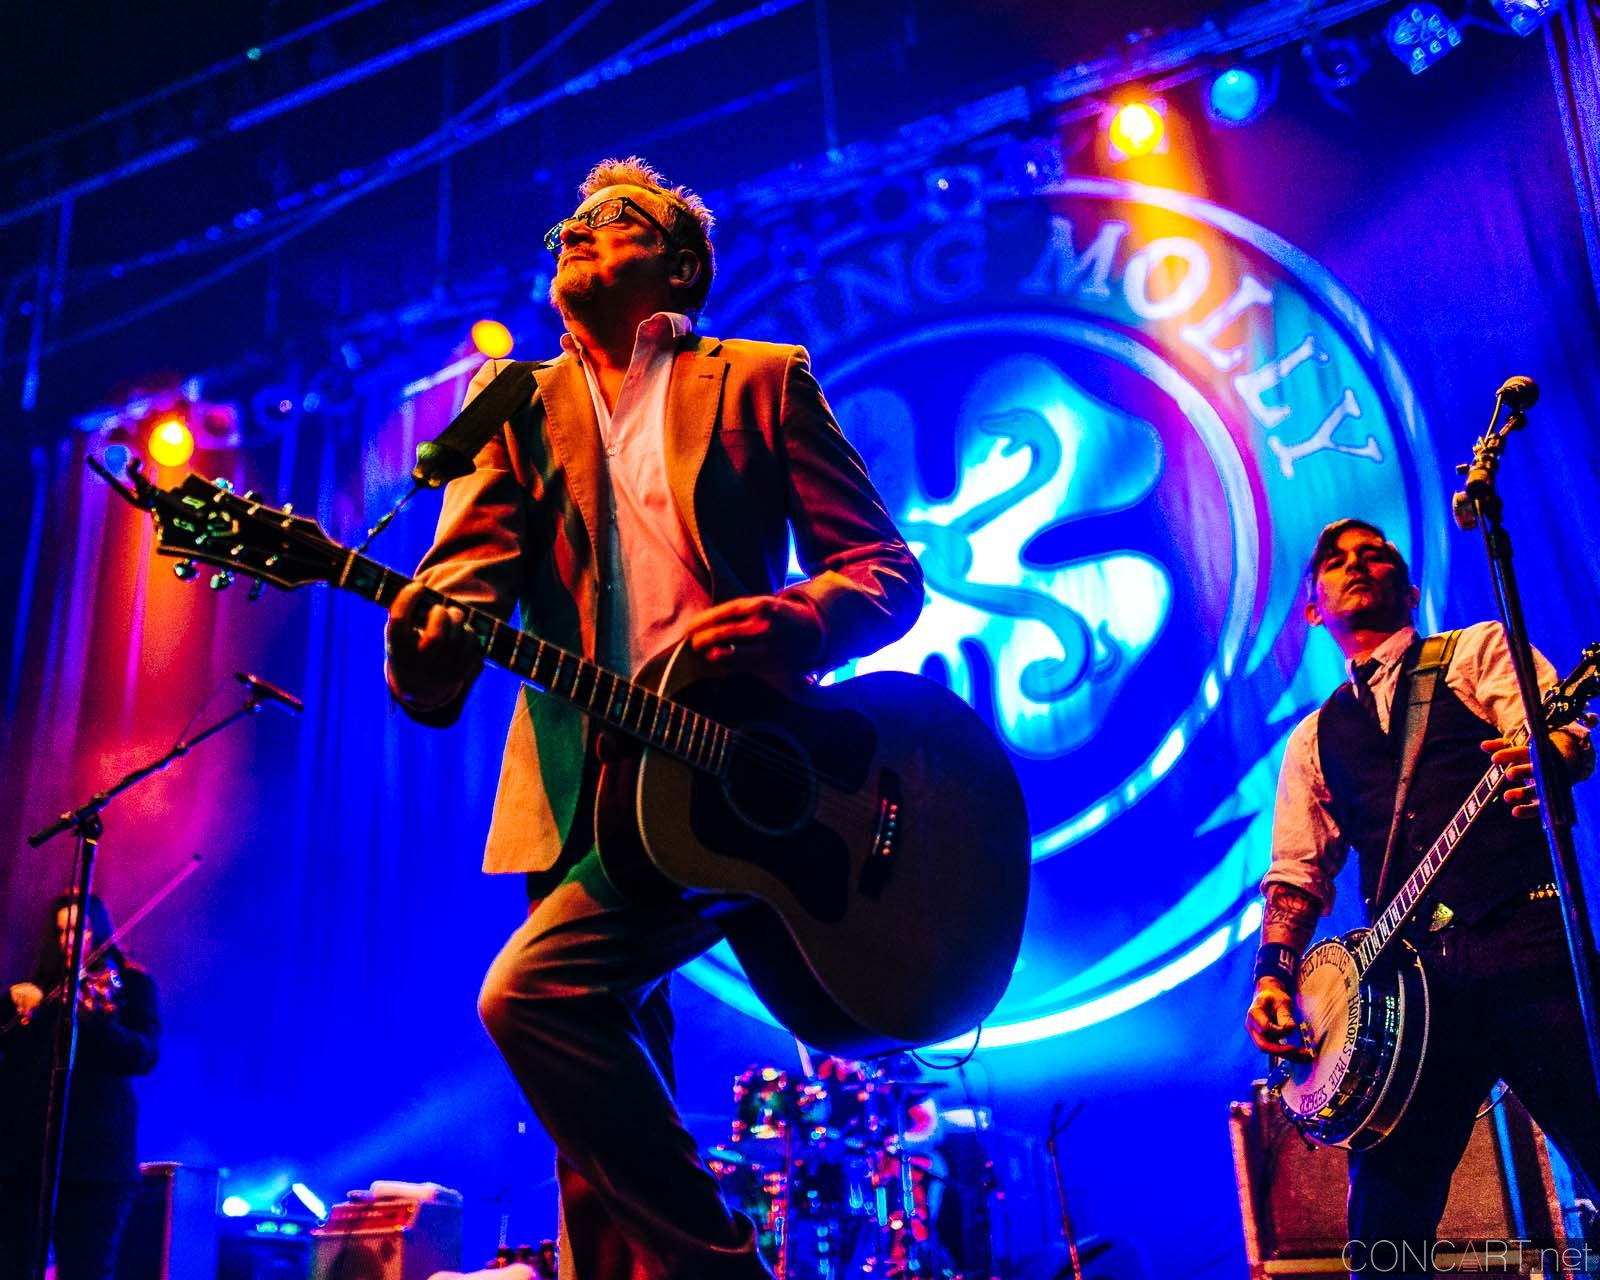 flogging_molly_live_egyptian_room_old_national_centre_indianapolis_2014-06